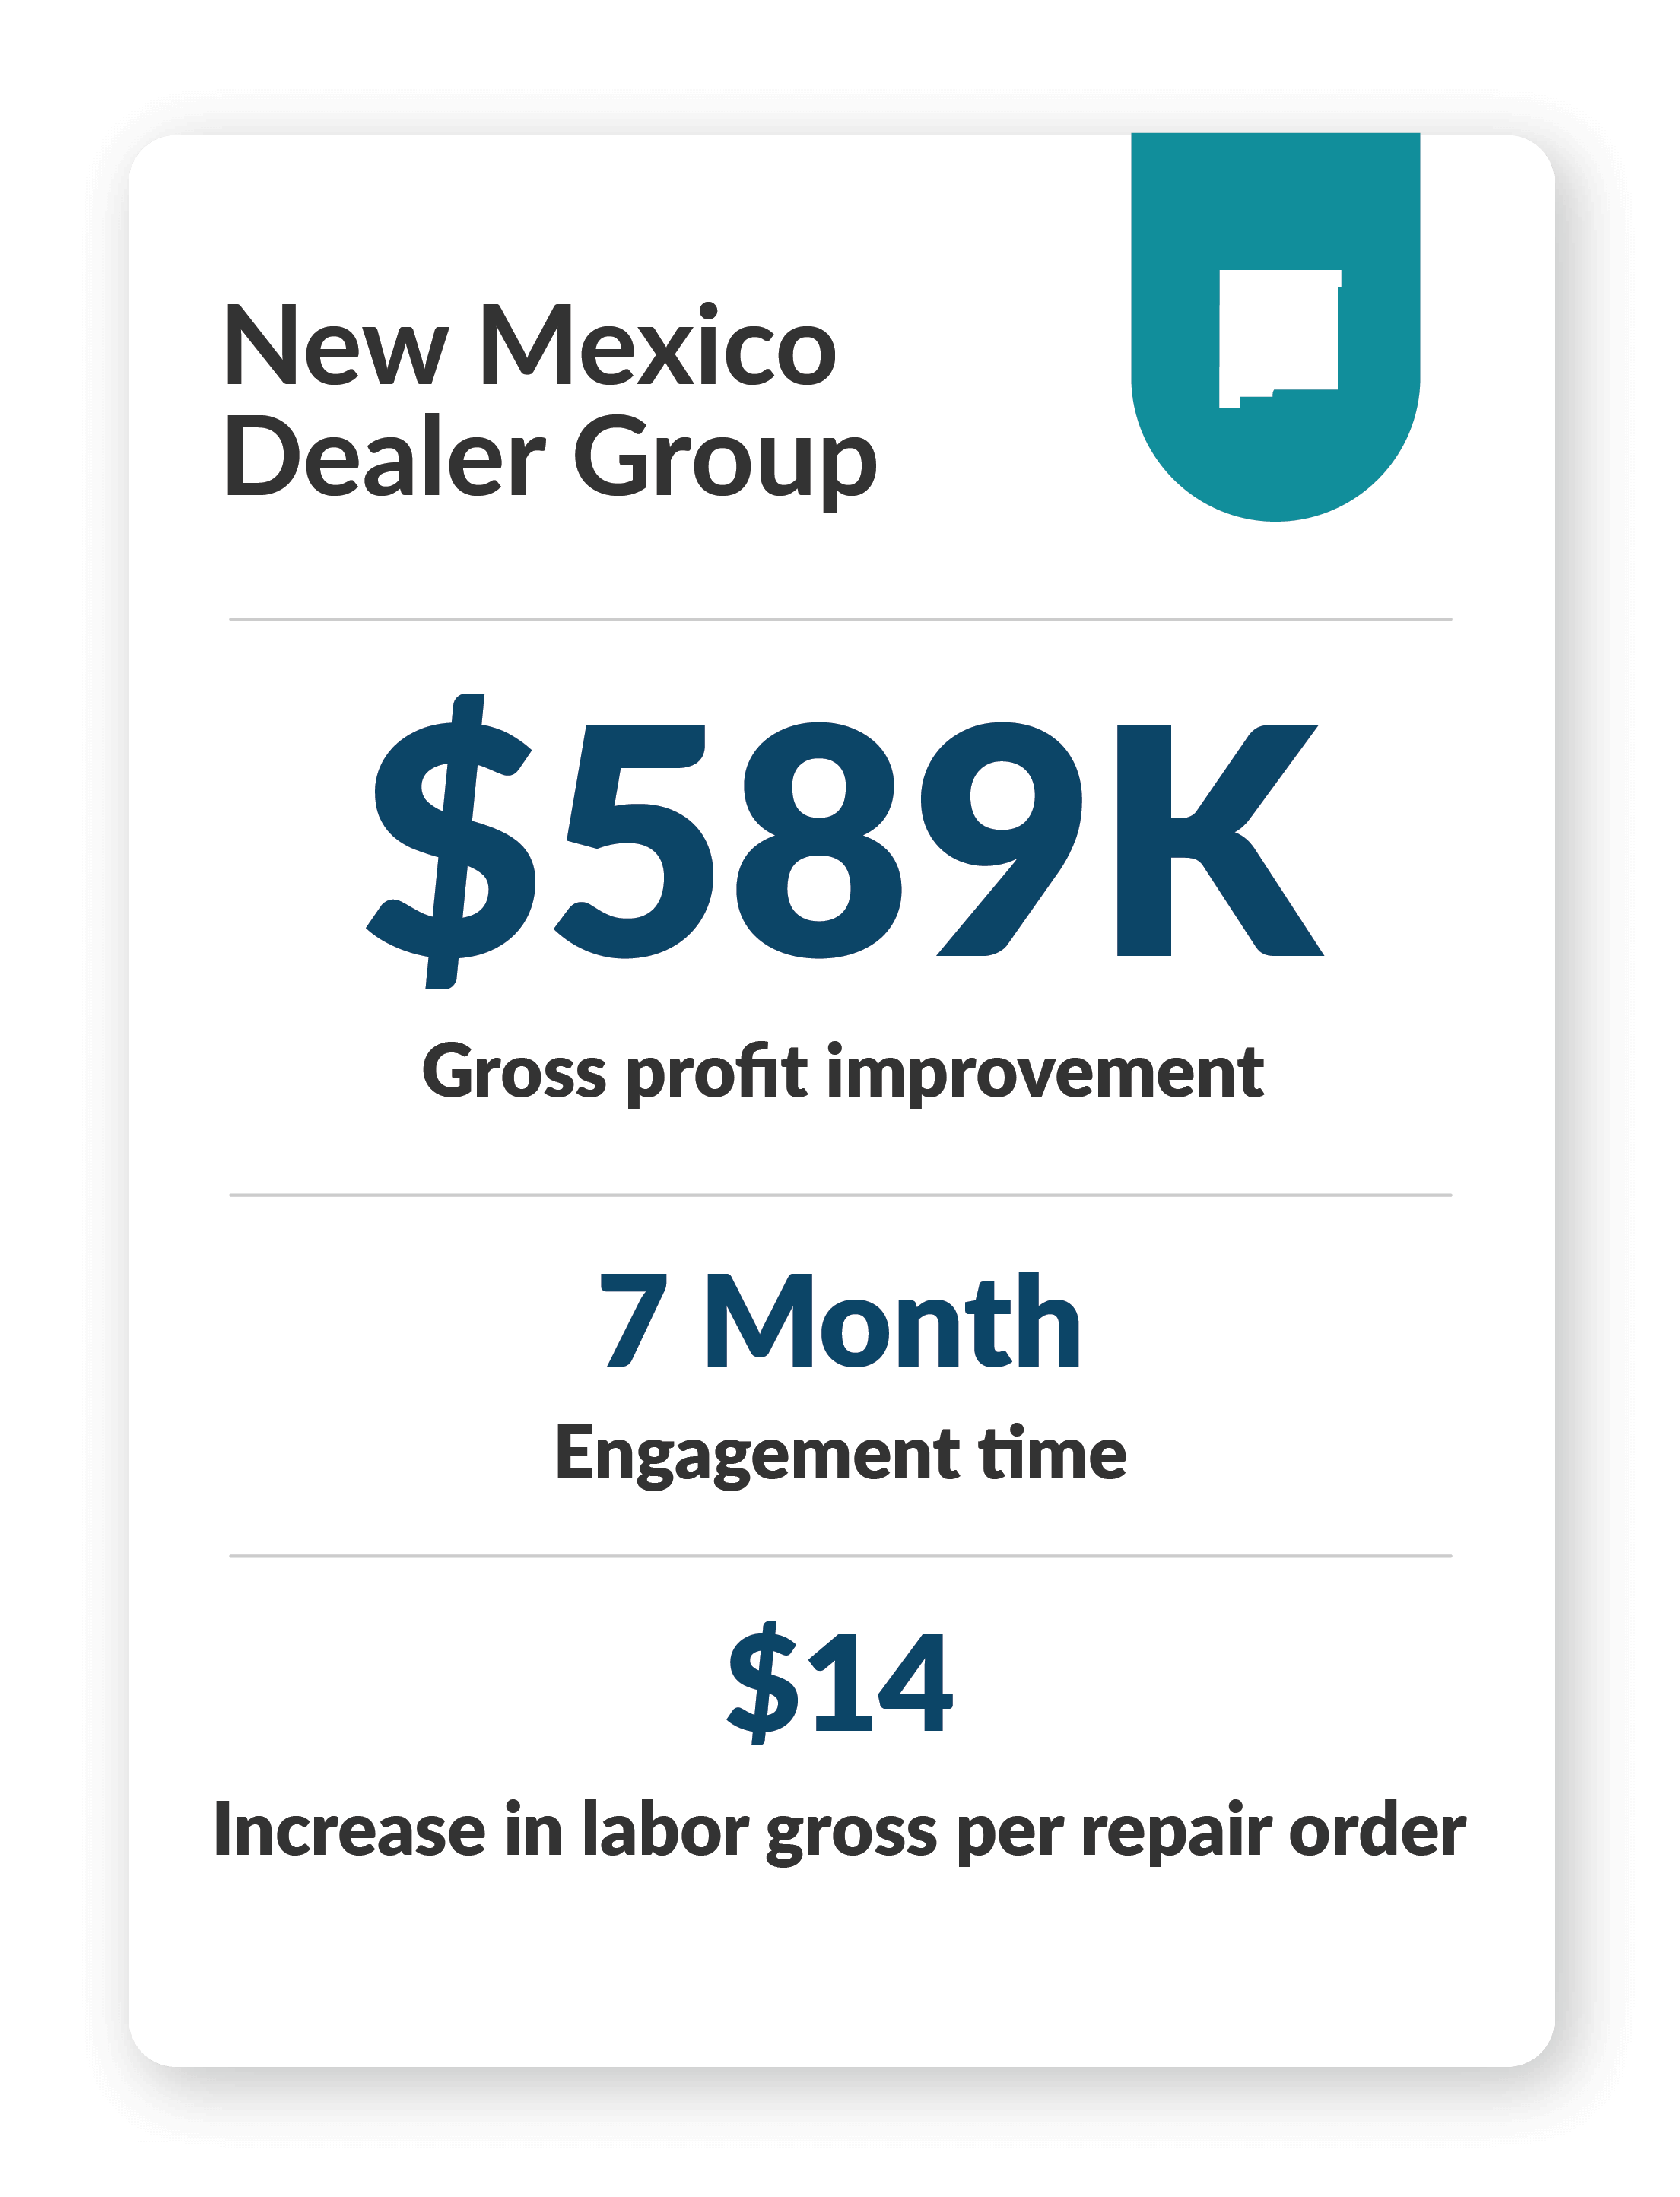 6 Store Group in New Mexico - $589k gross profit improvement